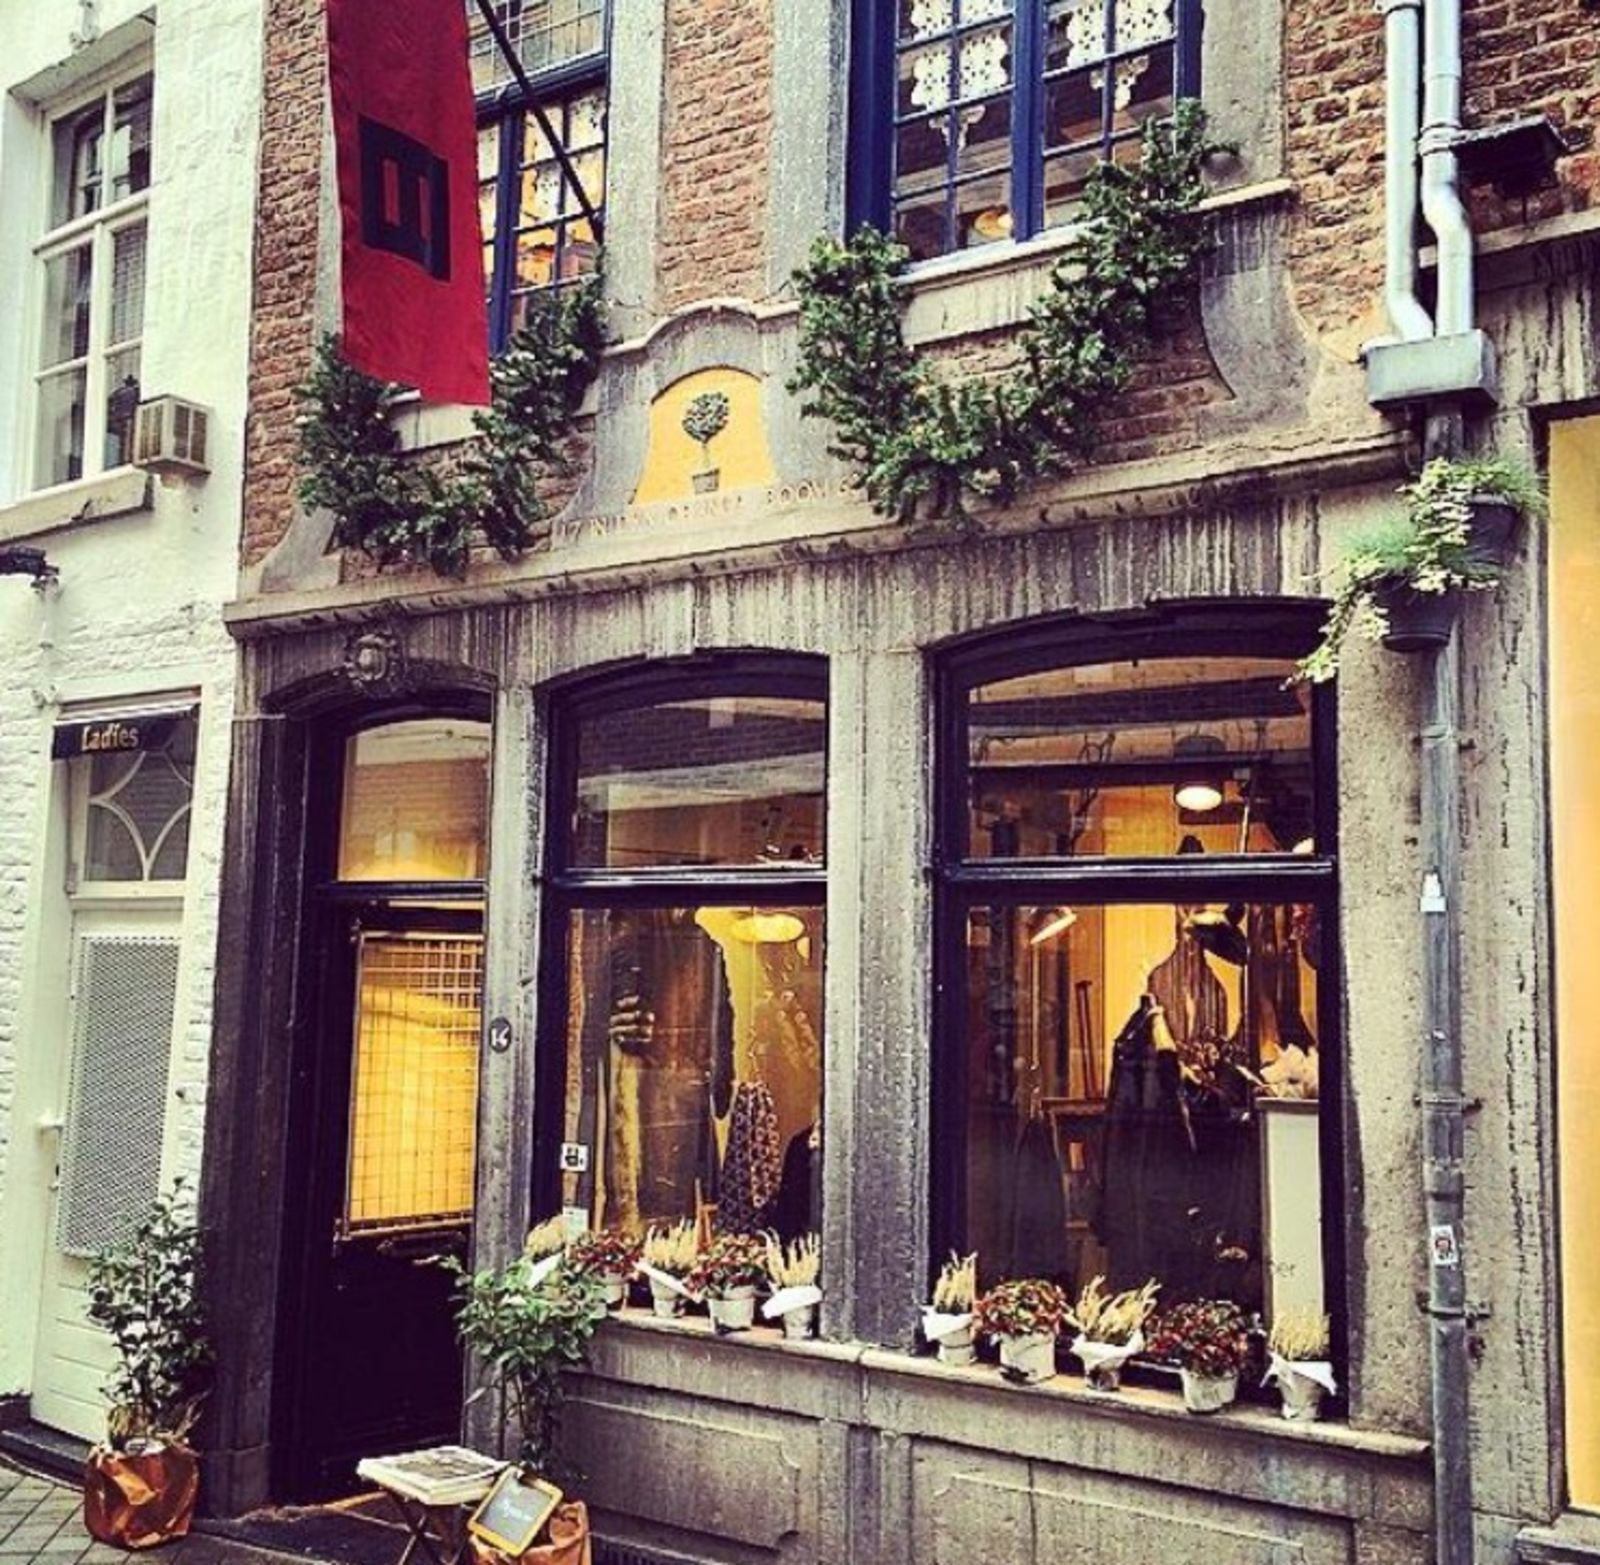 hannes roether store in Maastricht (Afbeelding 2)